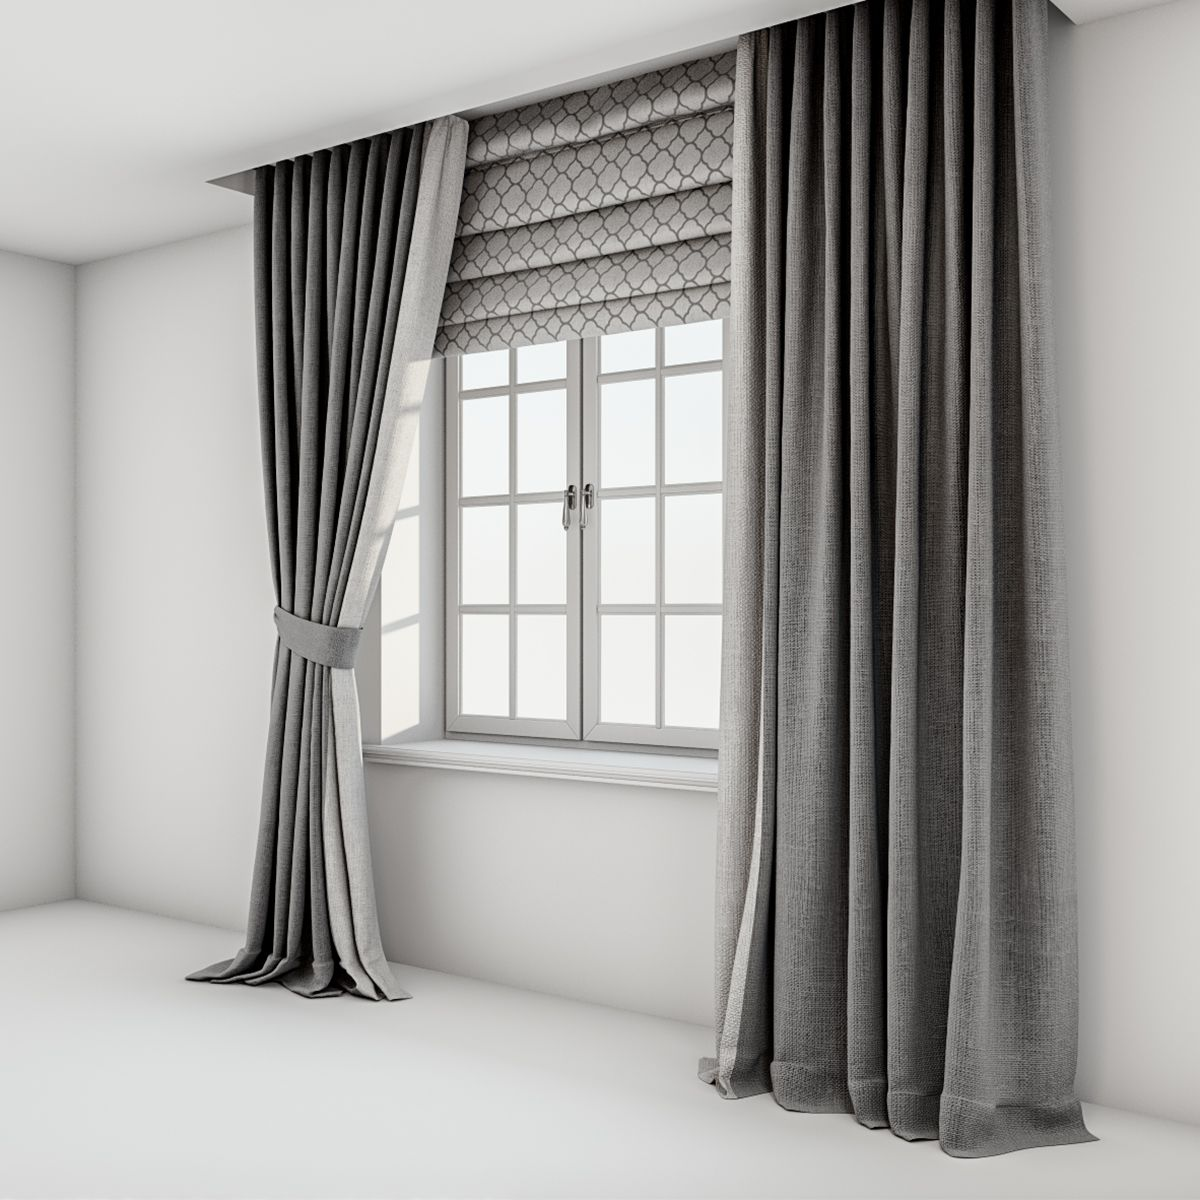 Grey Curtains Straight To The Floor And Catch It A Roman Blind With A Quatrefoil Pattern And The Wi Brown Floors Roman Curtains Dark Brown Floor